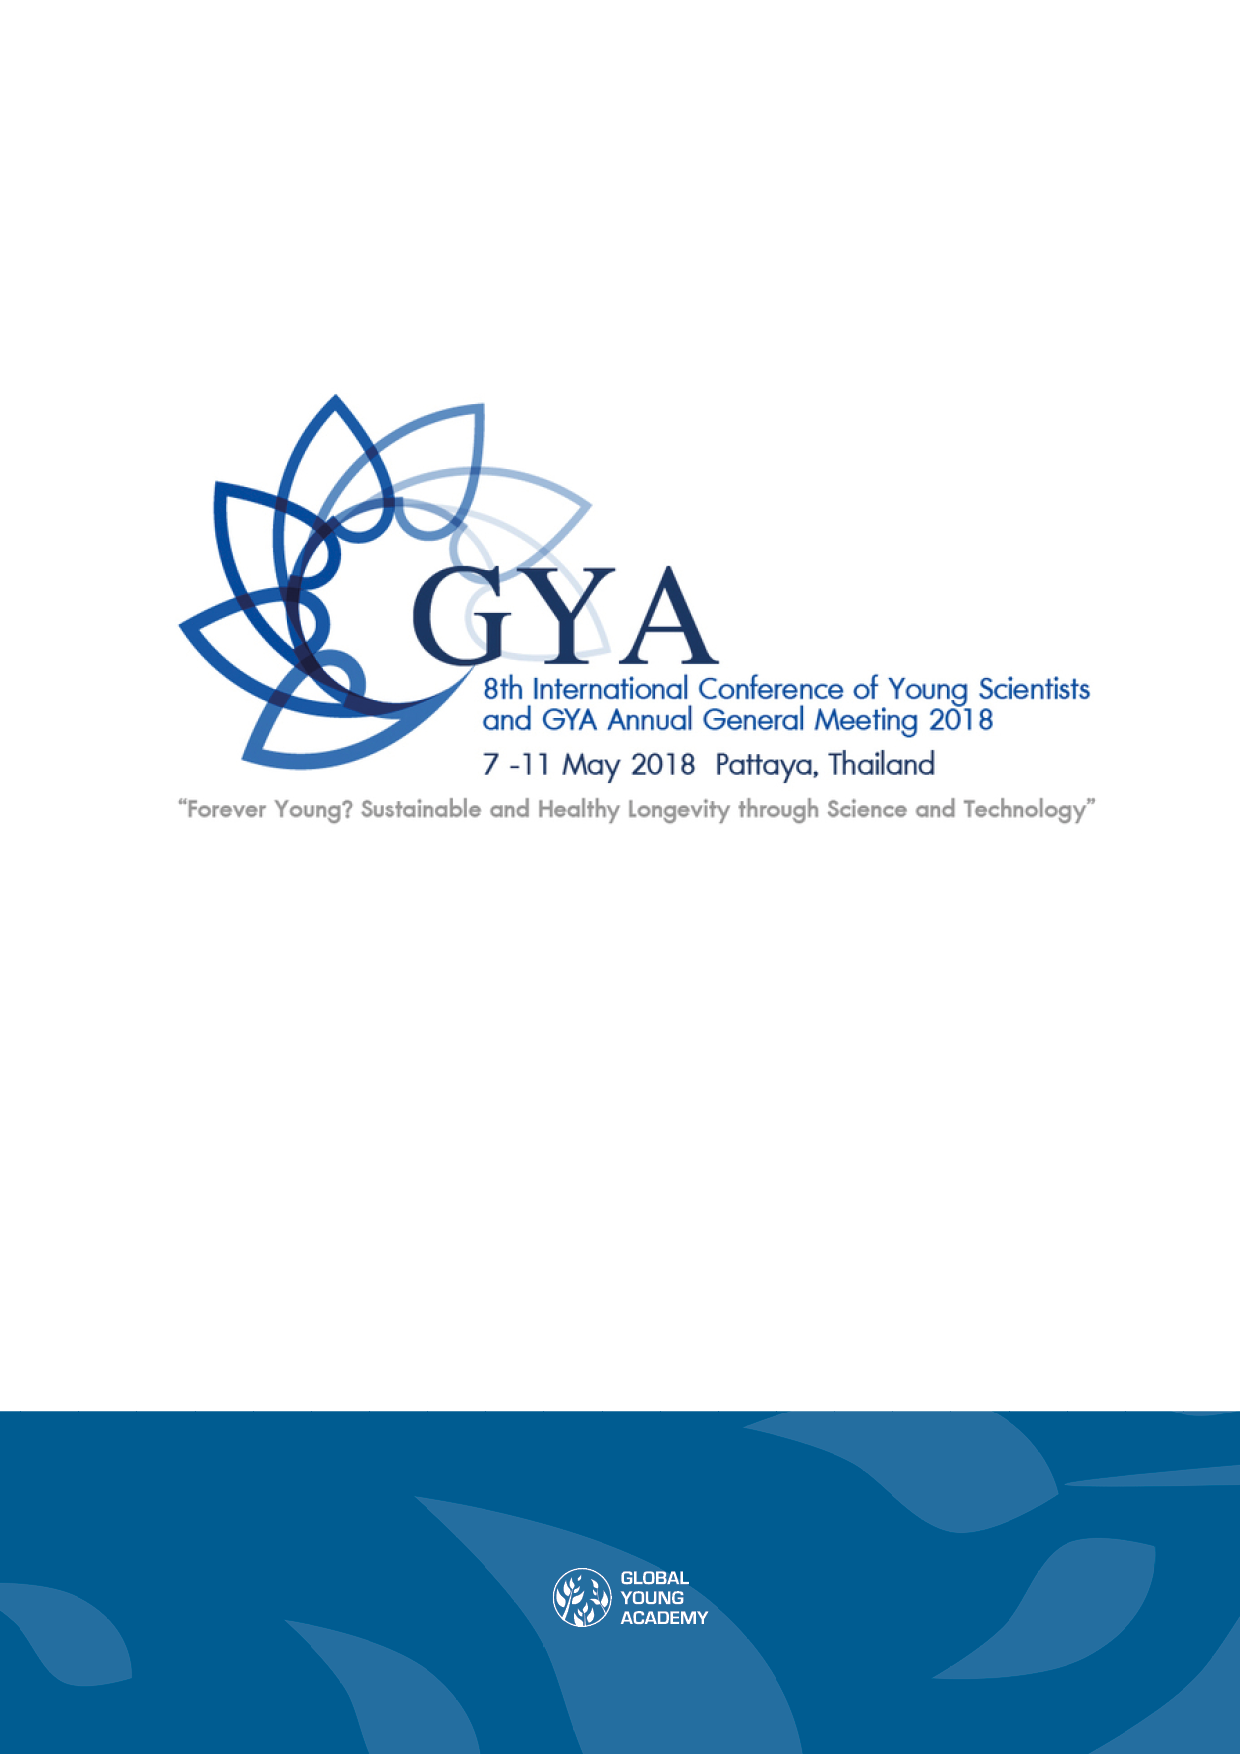 GYA AGM 2018 Report Online | Global Young Academy